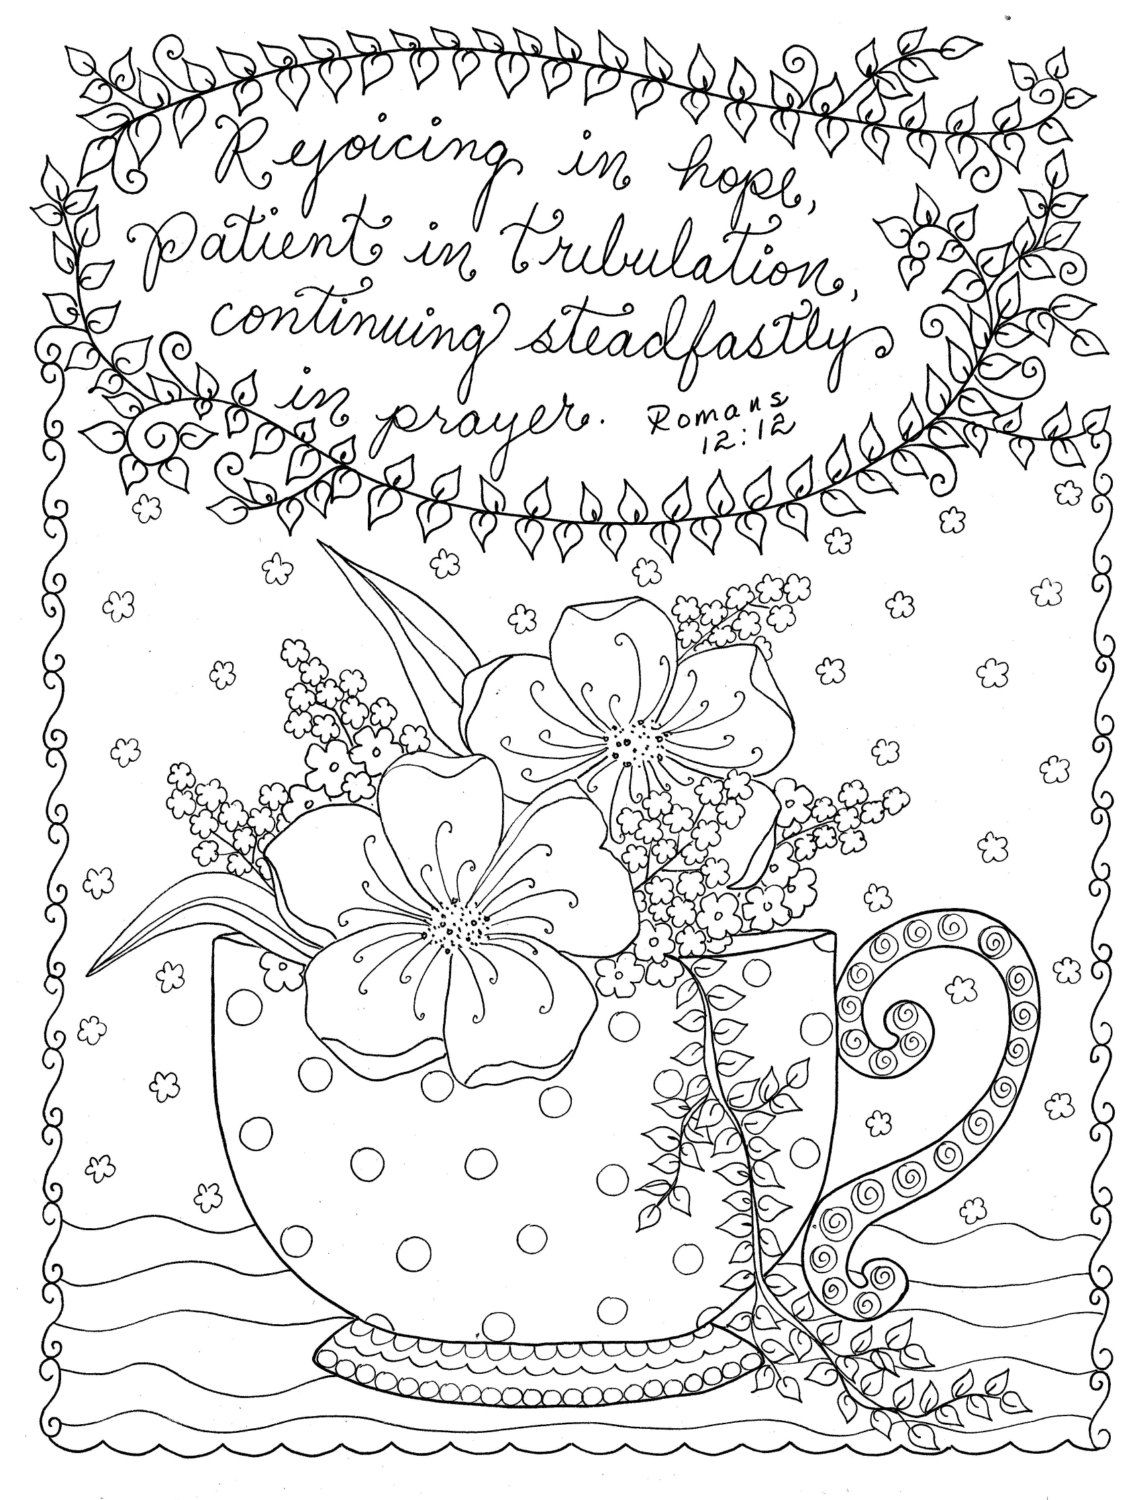 5 Pages Christian Coloring pages Instant Download Coloring